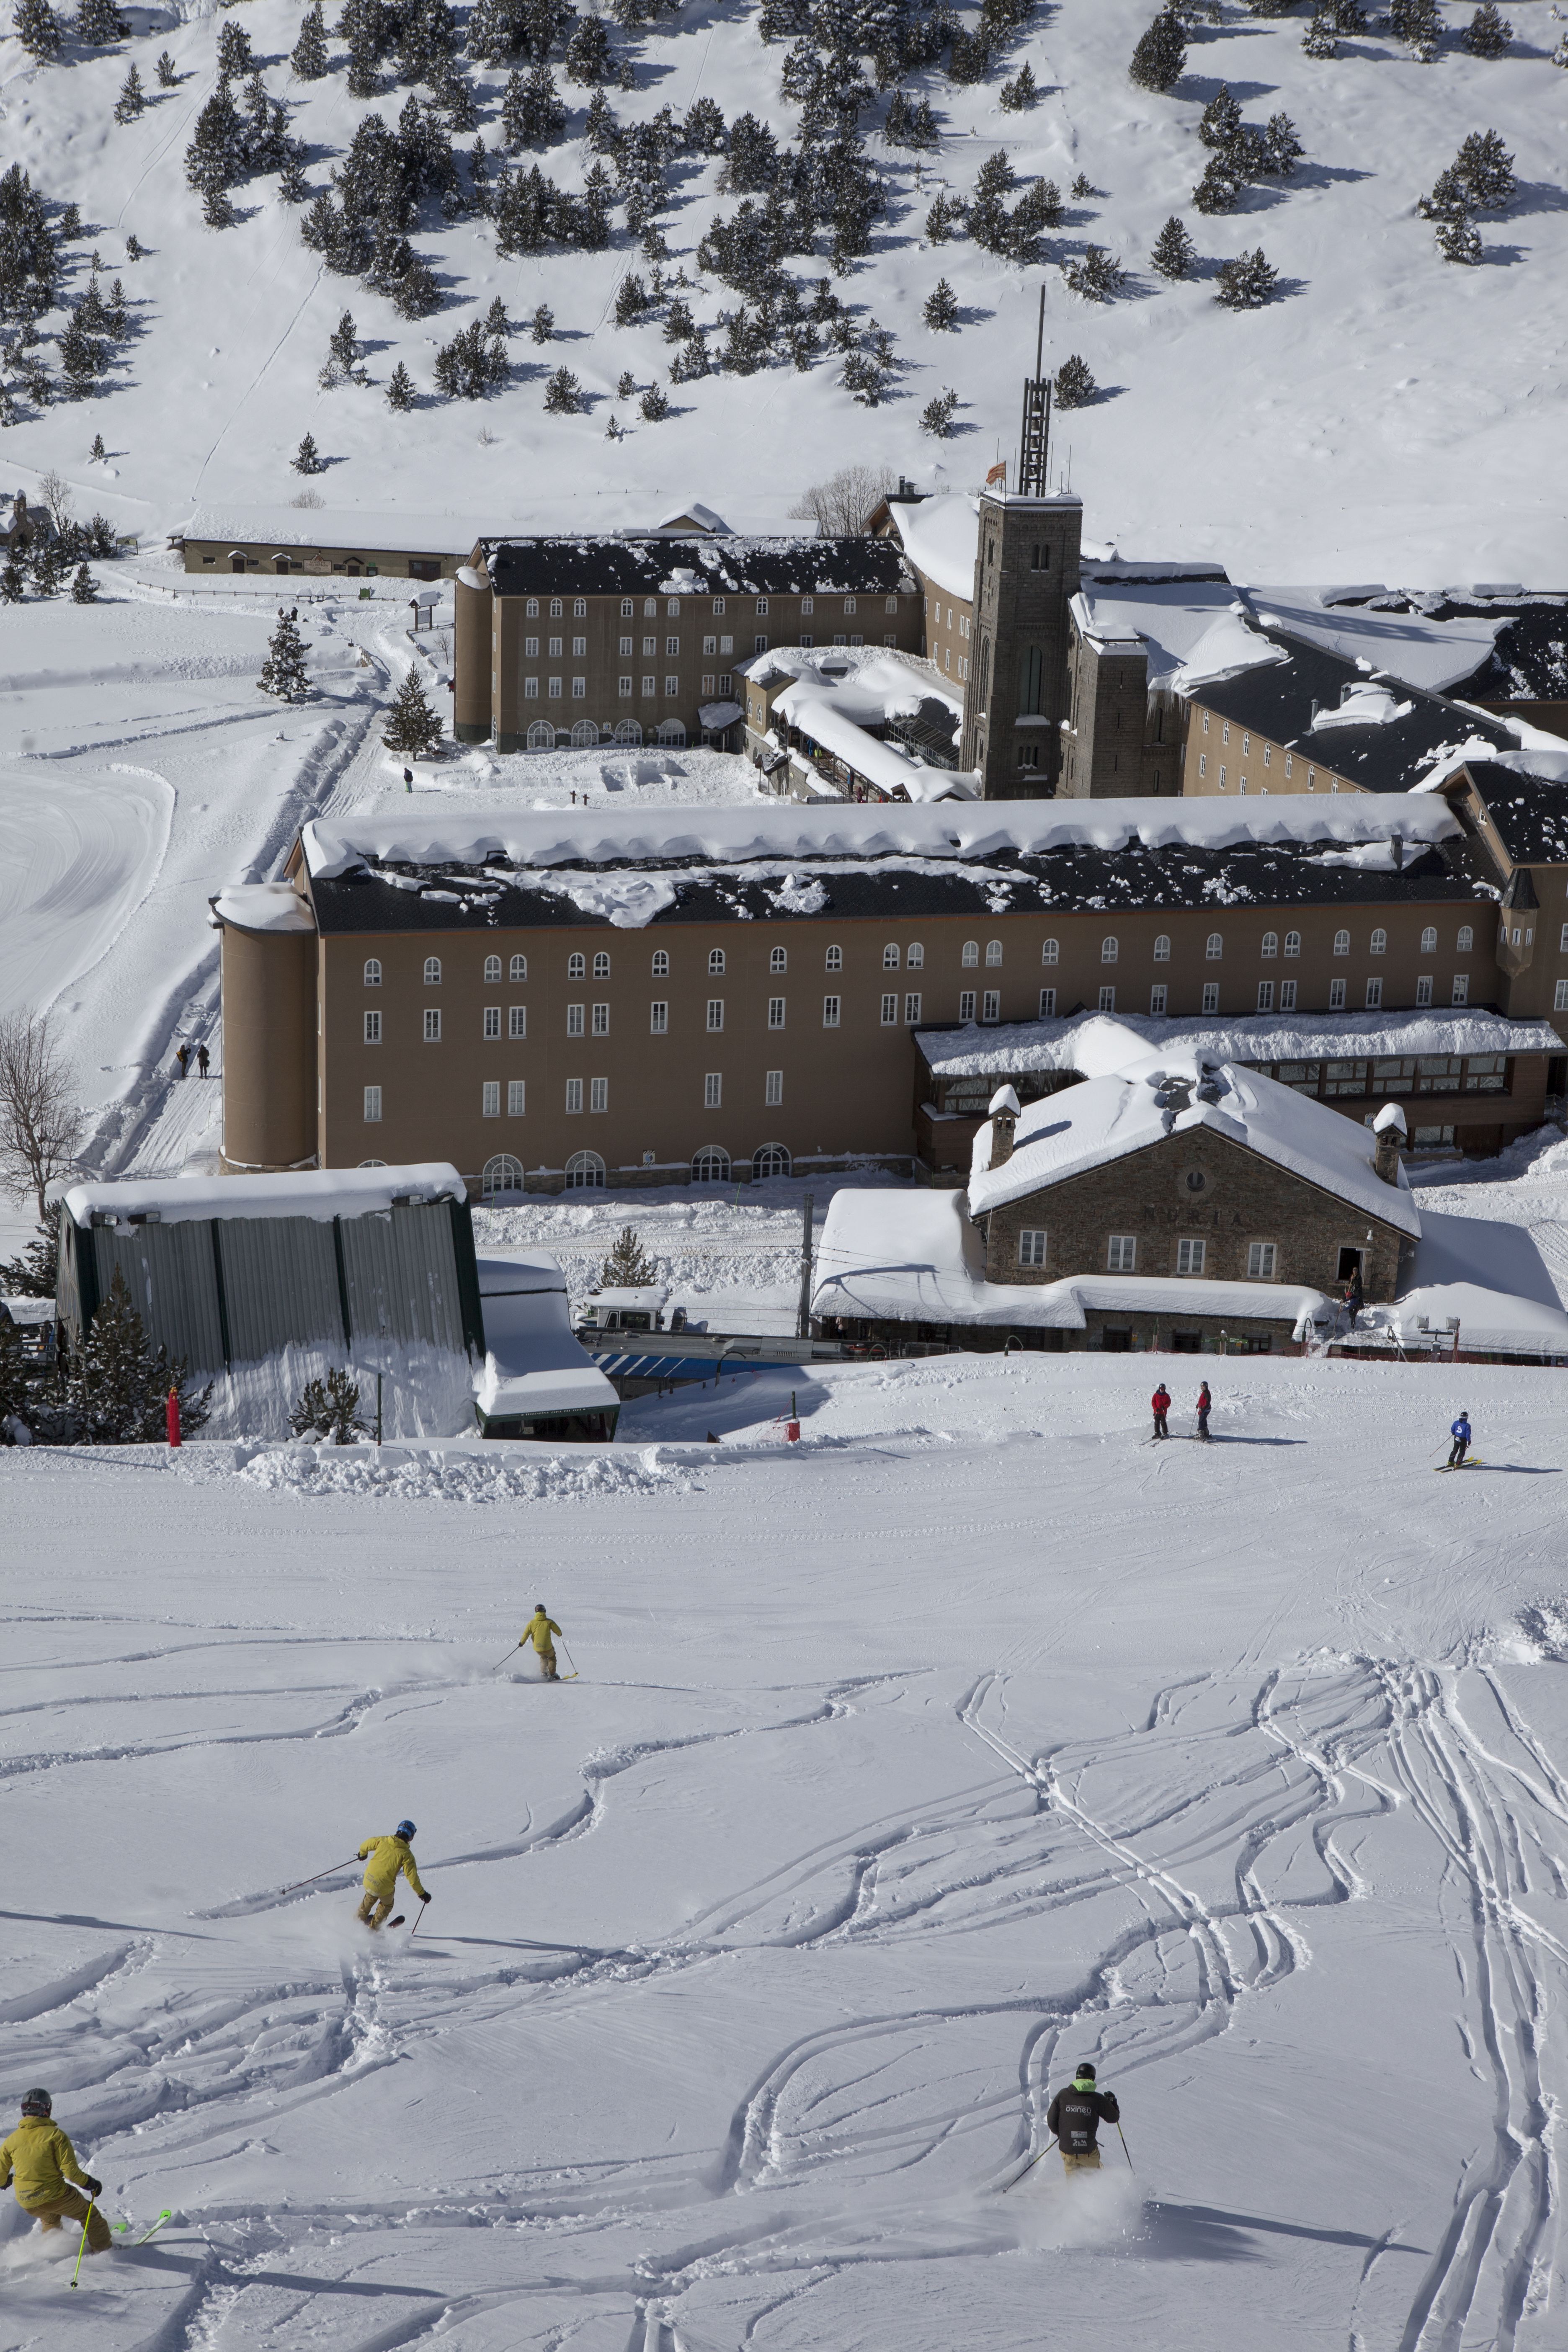 Ripollès Season Ski Pass - Working days